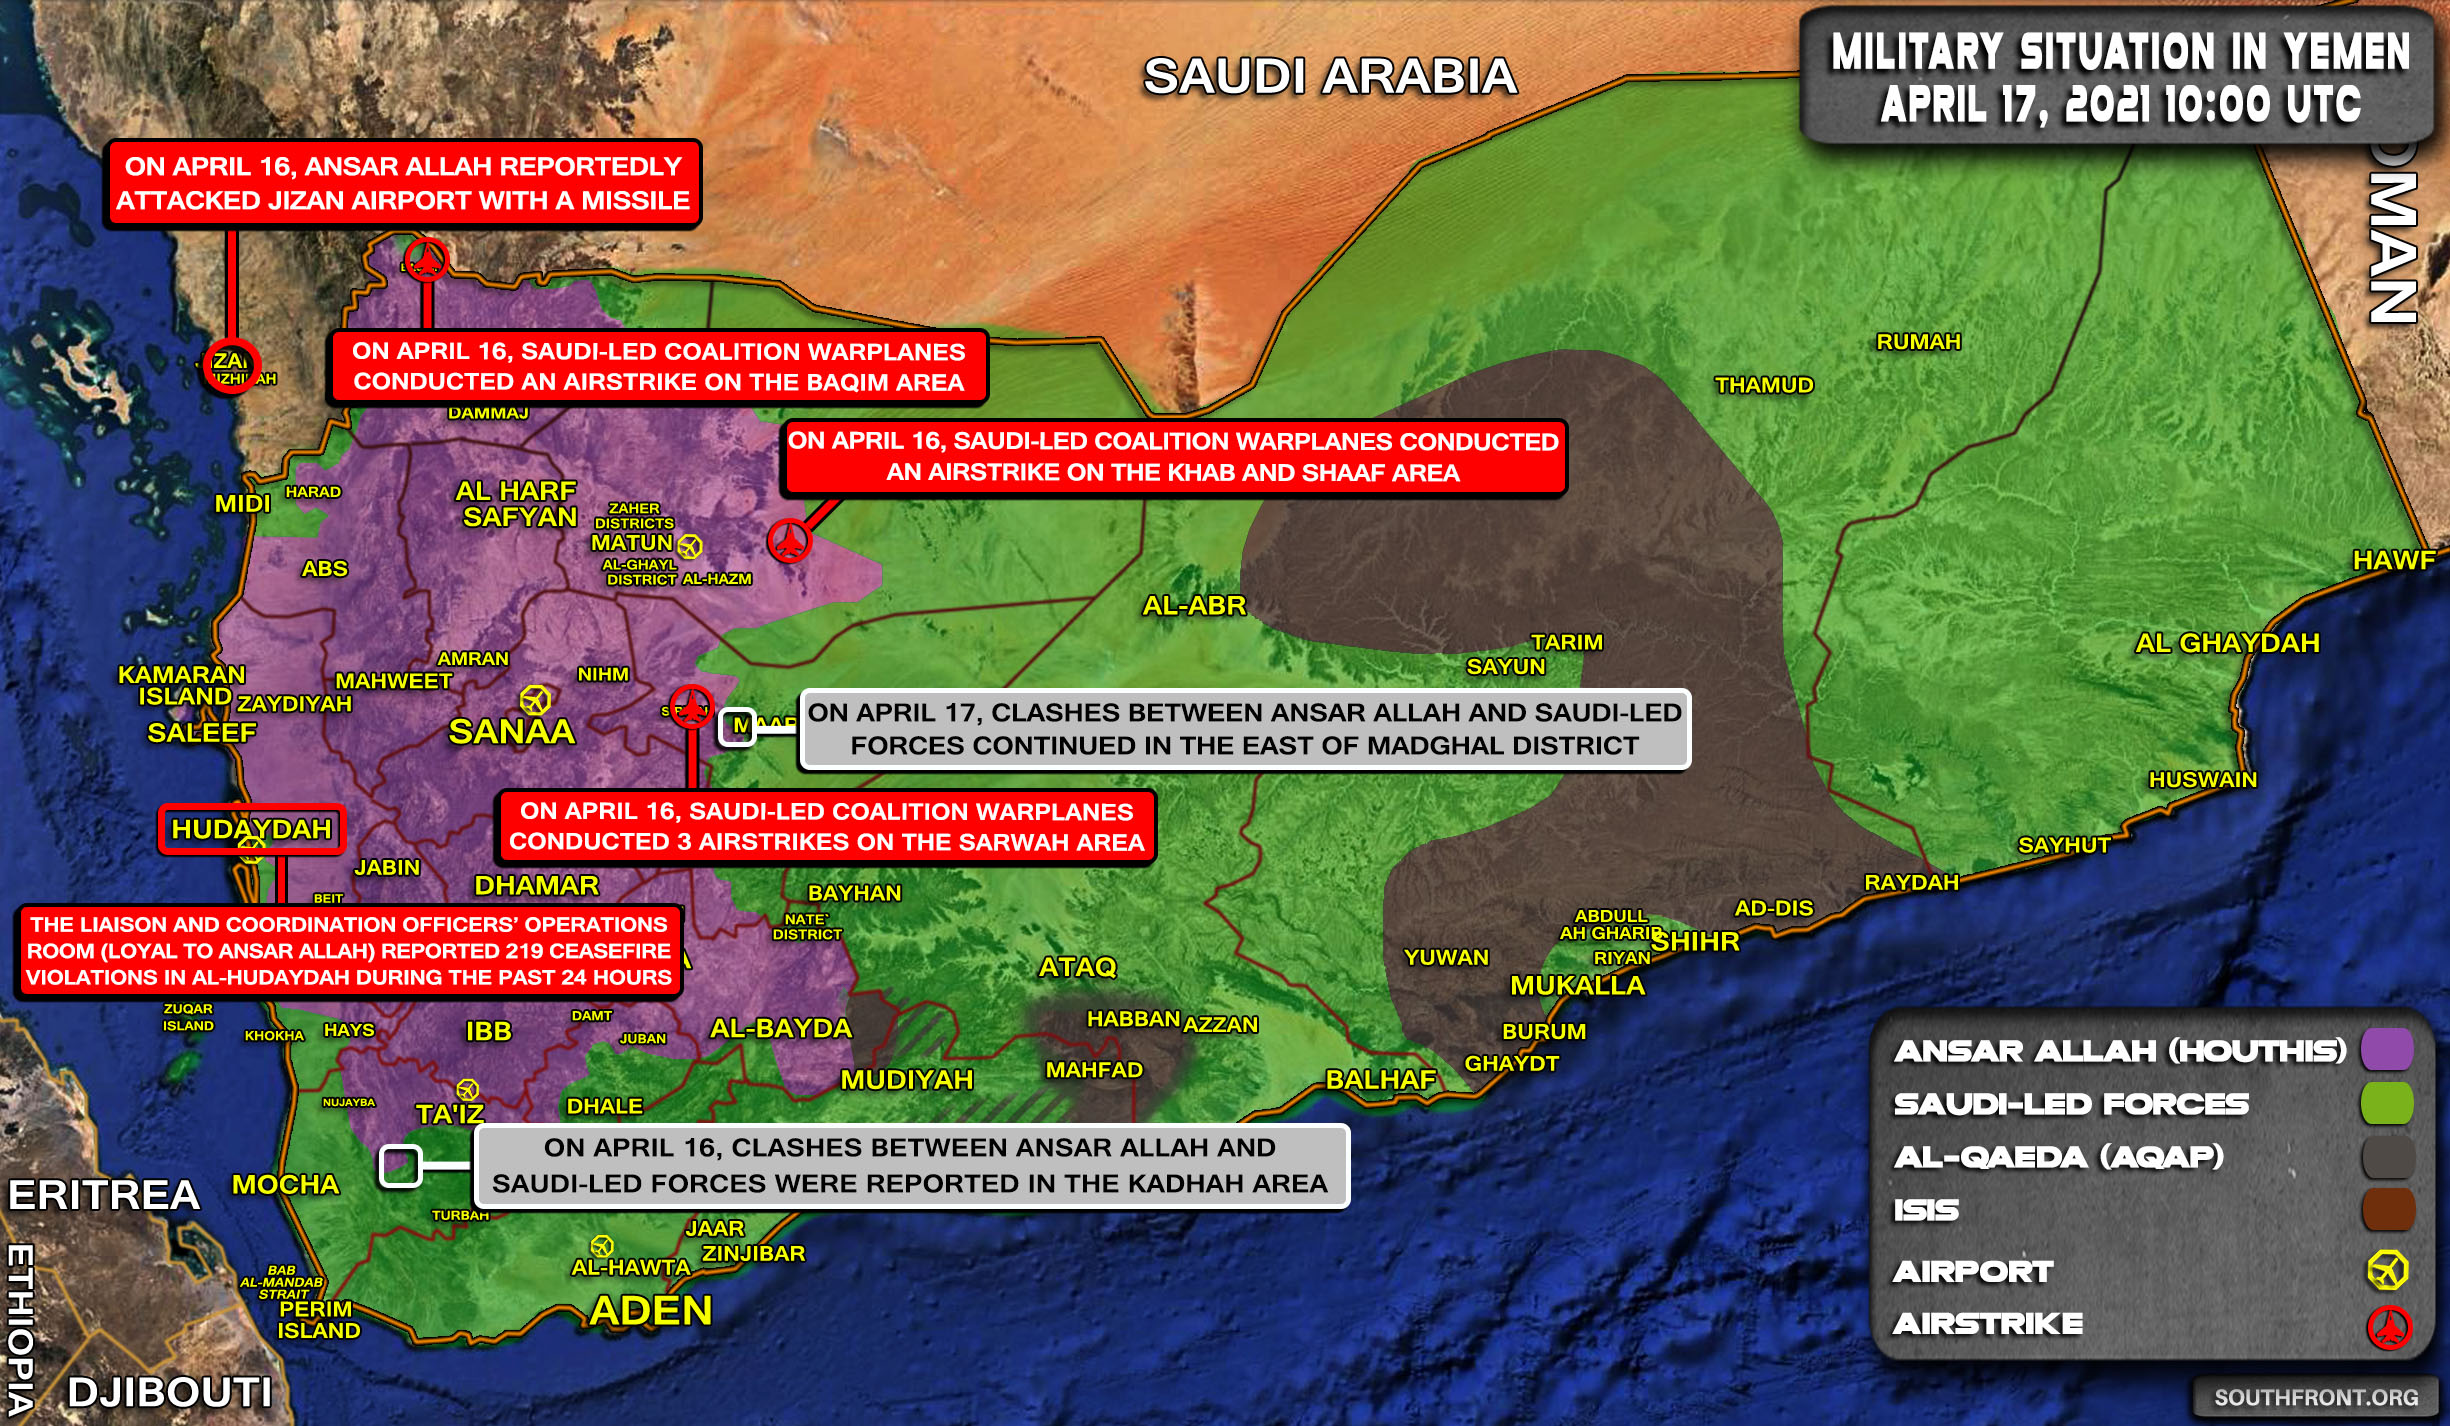 Military Situation In Yemen On April 17, 2021 (Map Update)